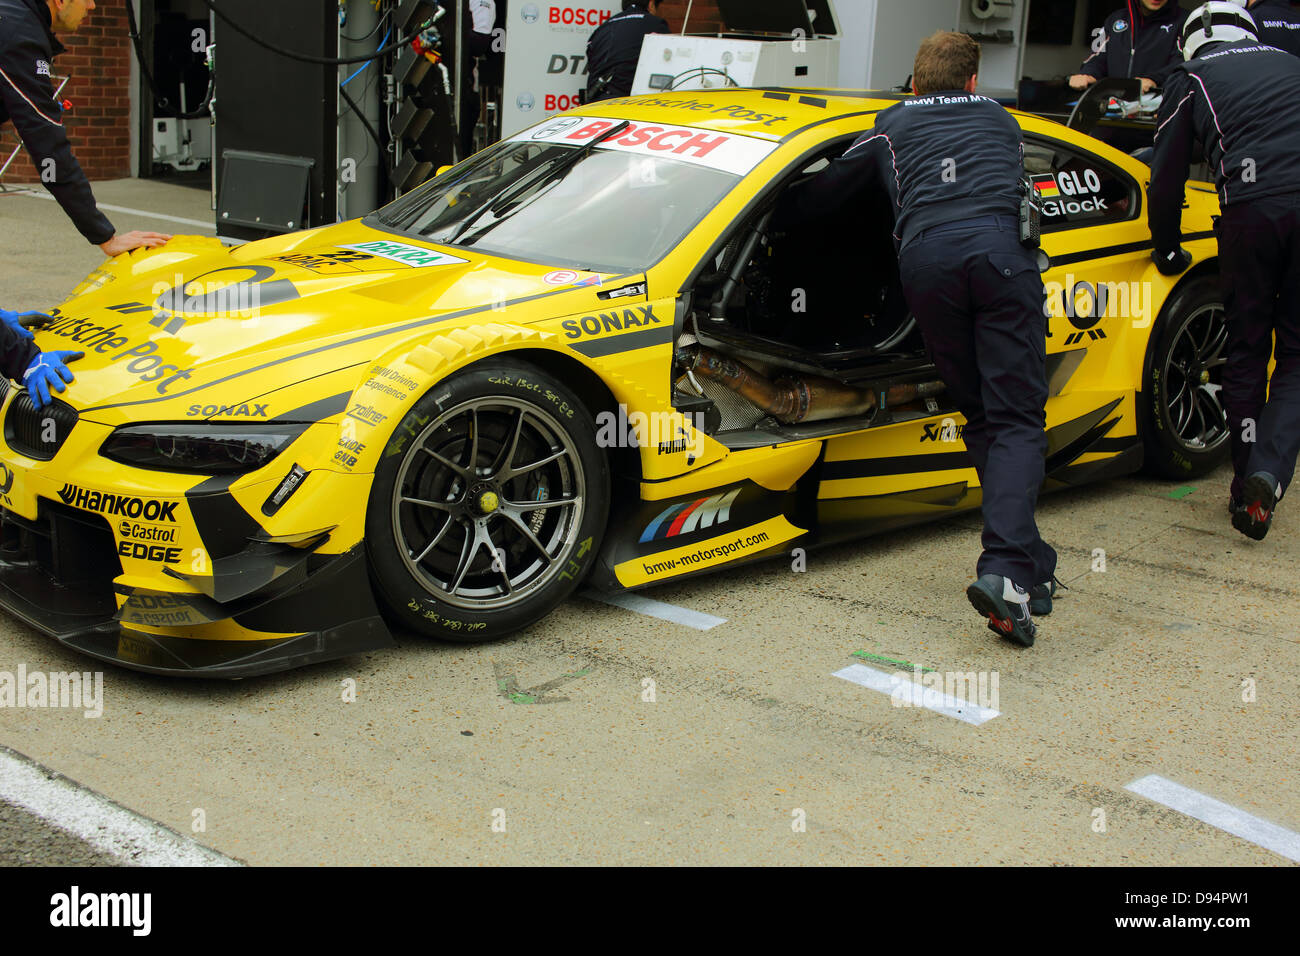 German DTM Touring Car Series, Brands Hatch Circuit. Pit crew working on the car. - Stock Image